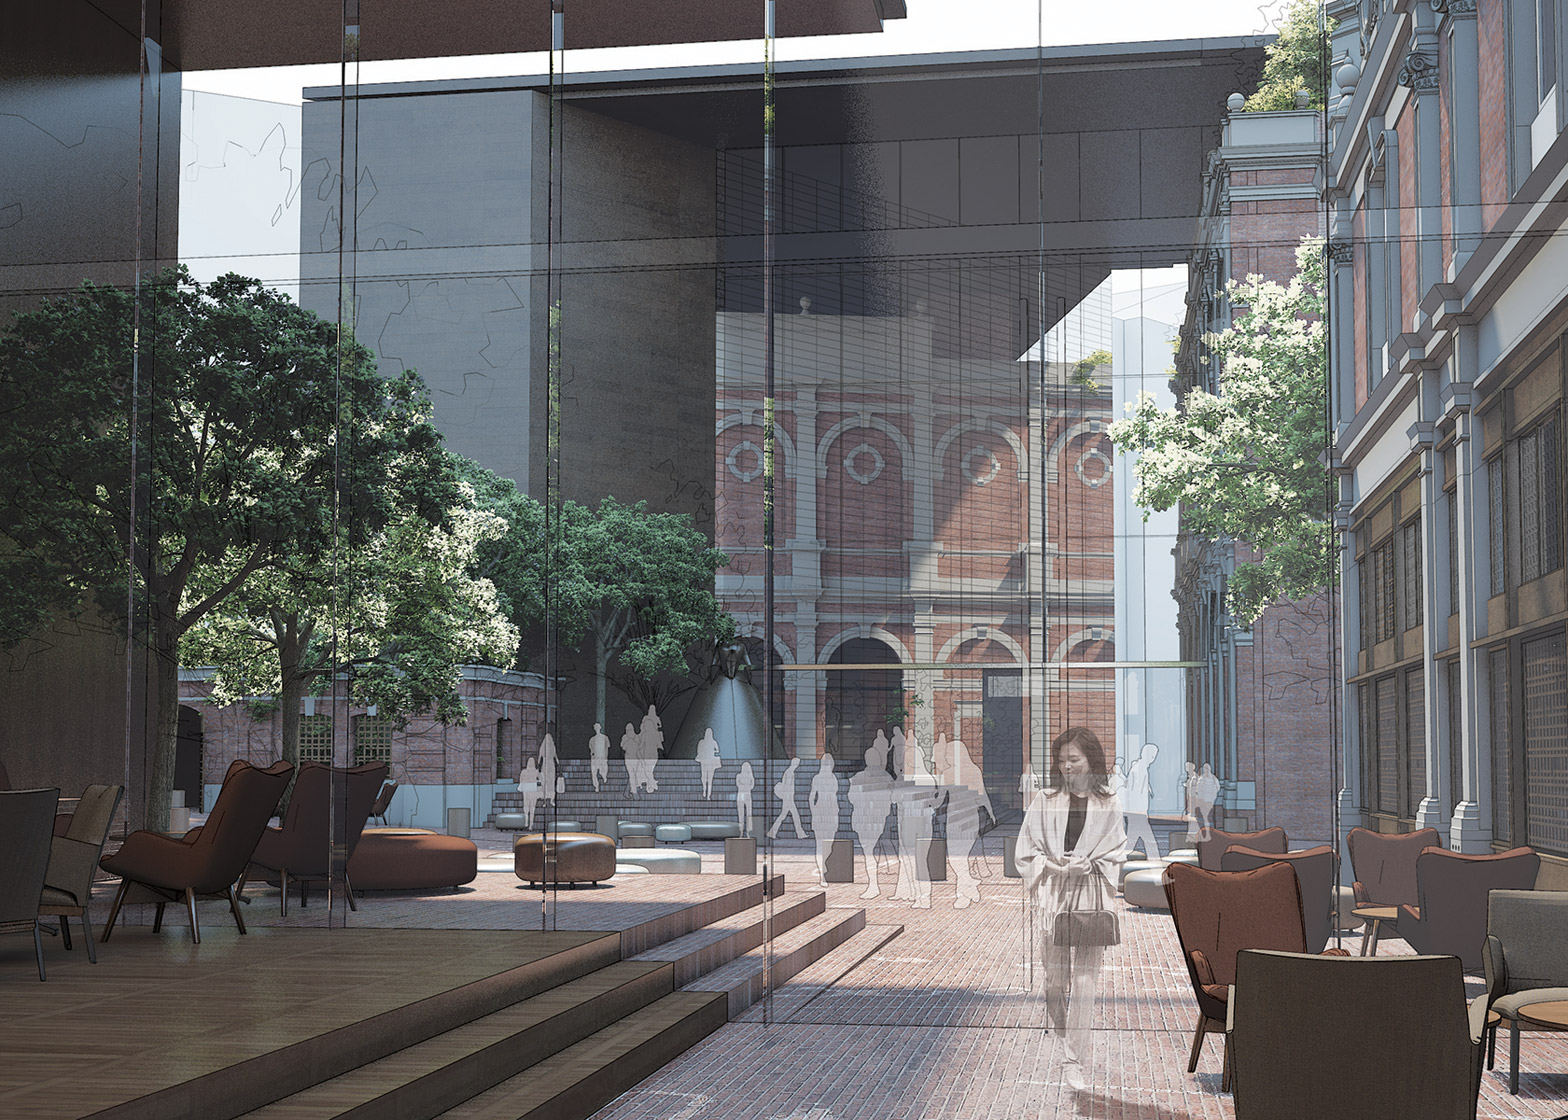 Competition entry for the new Museum of London building, UK by Studio Milou architecture